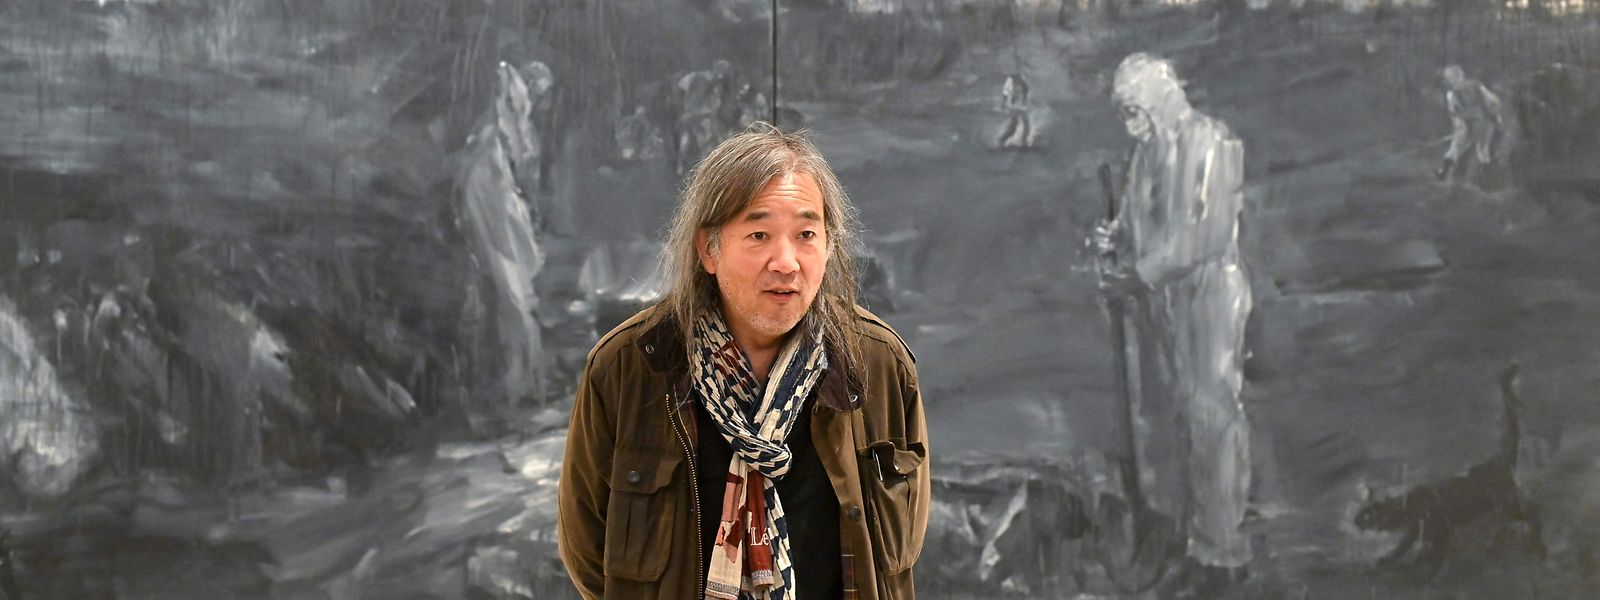 """Franco-Chinese painter, Yan Pei-Ming, stands in front of his painting entitled «Pandemie» (Pandemic) during a press visit to present the exhibition """"In the Name of the Father"""" devoted to his work at the Unterlinden museum in Colmar, eastern France, on March 31, 2021. (Photo by SEBASTIEN BOZON / AFP)"""